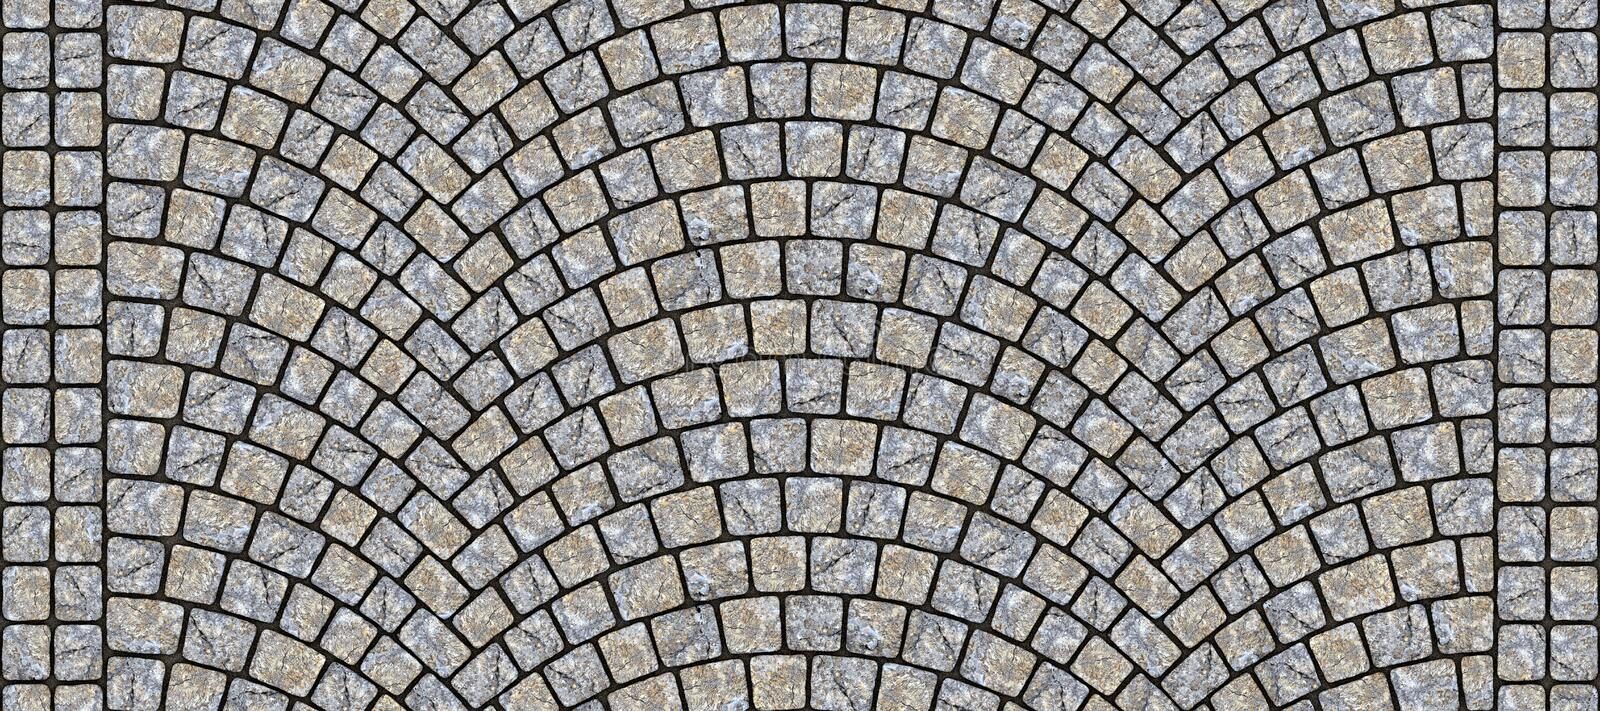 Road curved cobblestone texture 107. Cobblestone arched pavement road with edge courses at the sidewalk. Seamless tileable repeating 3D rendering texture stock illustration